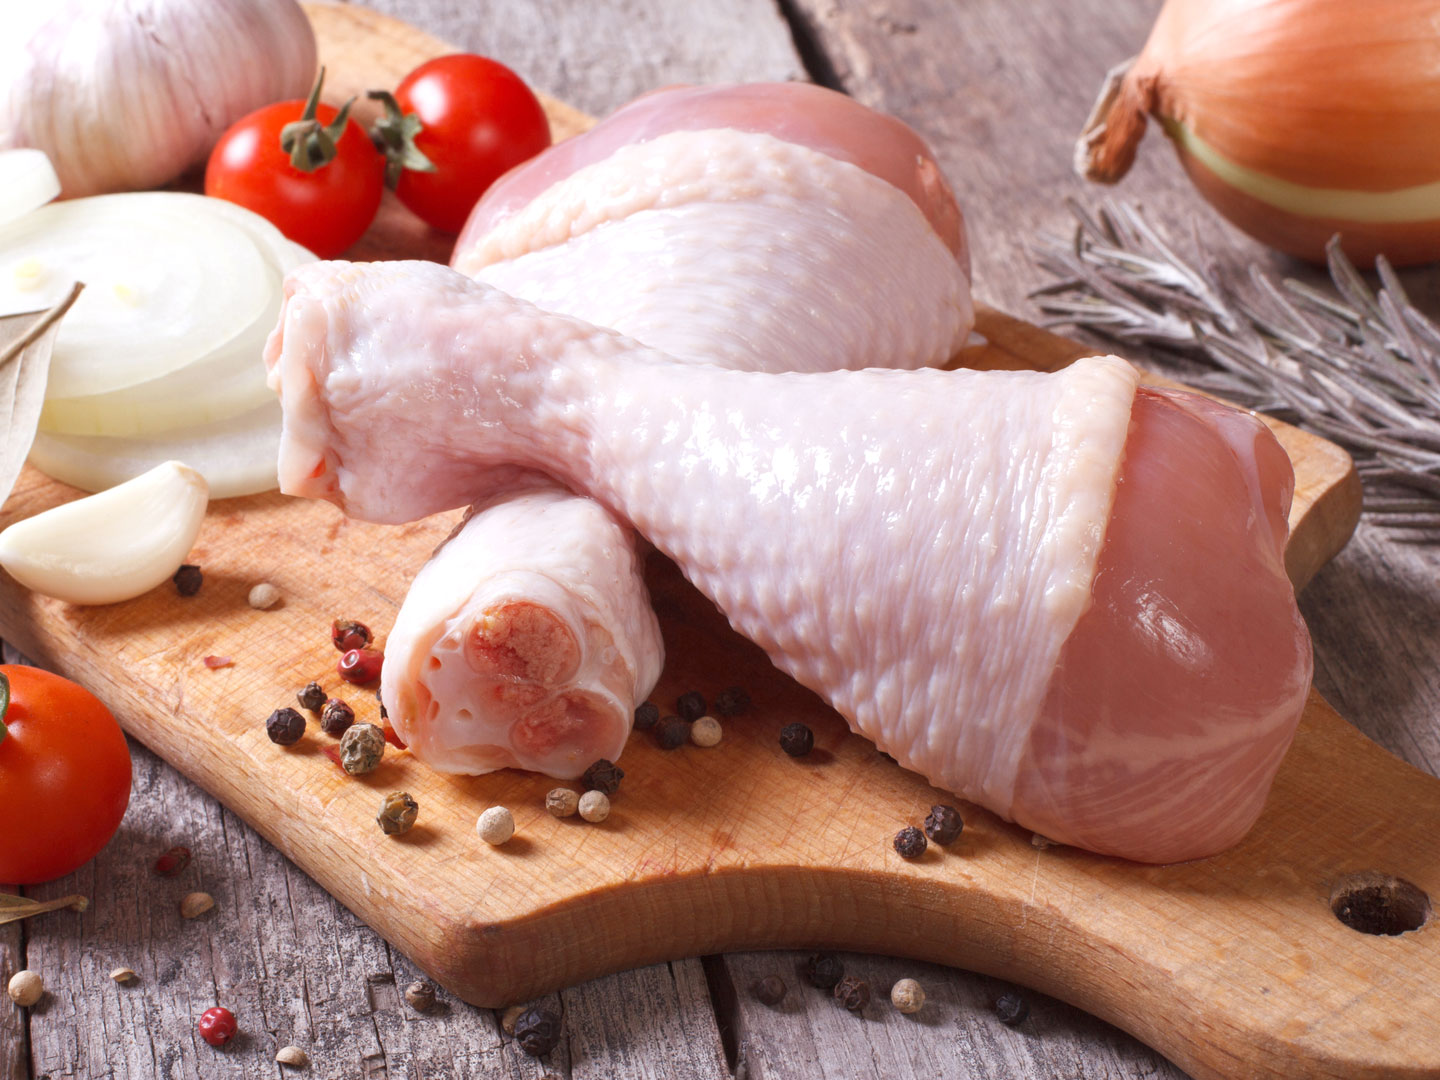 Wash Raw Chicken? - Ask Dr. Weil